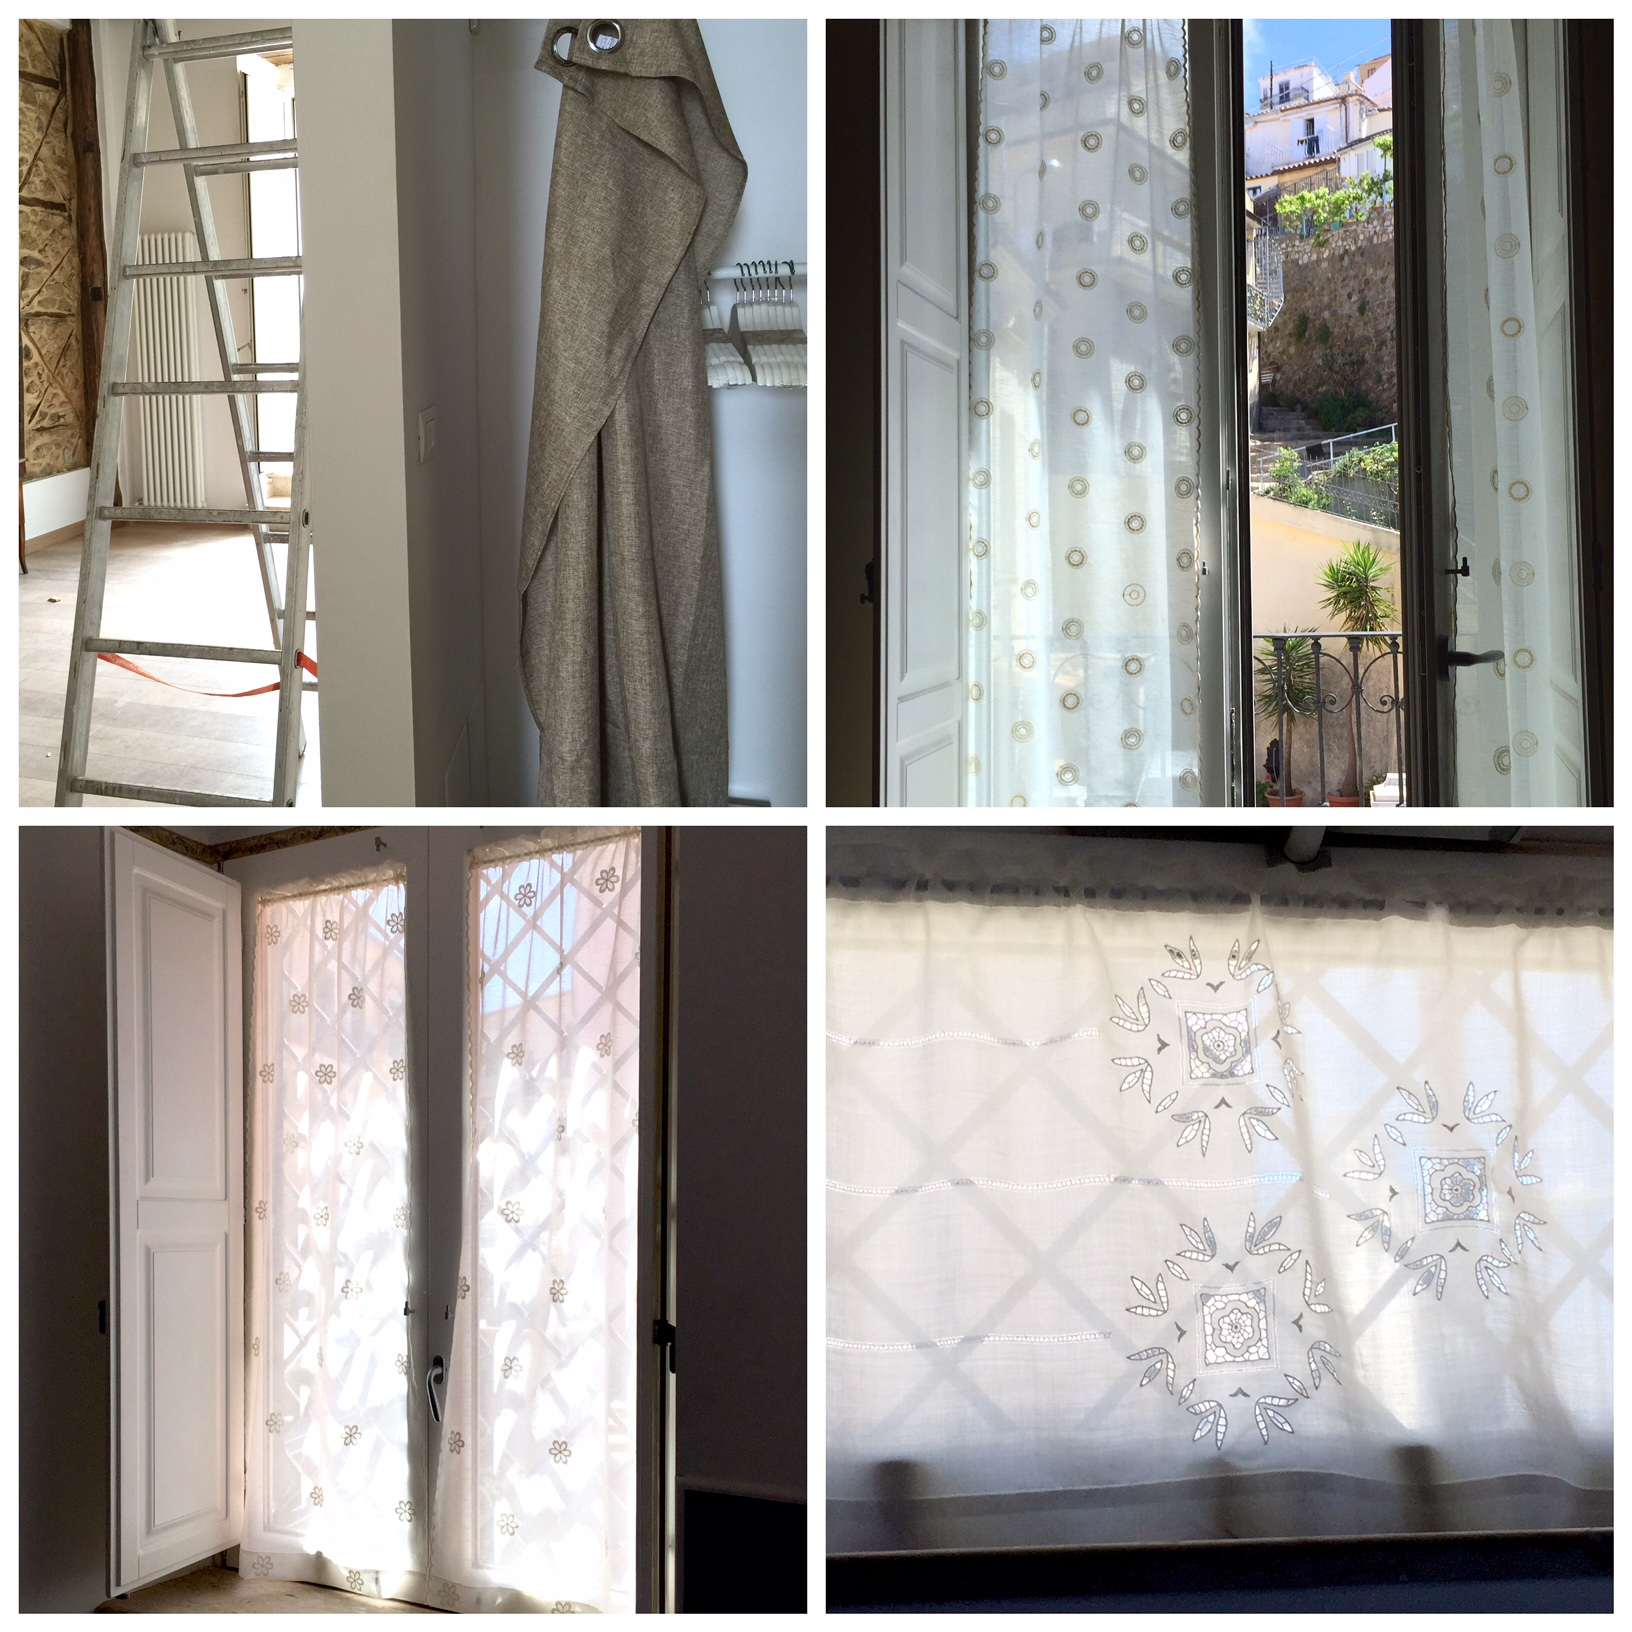 different kind of curtains (tende) where made by talented Lidia